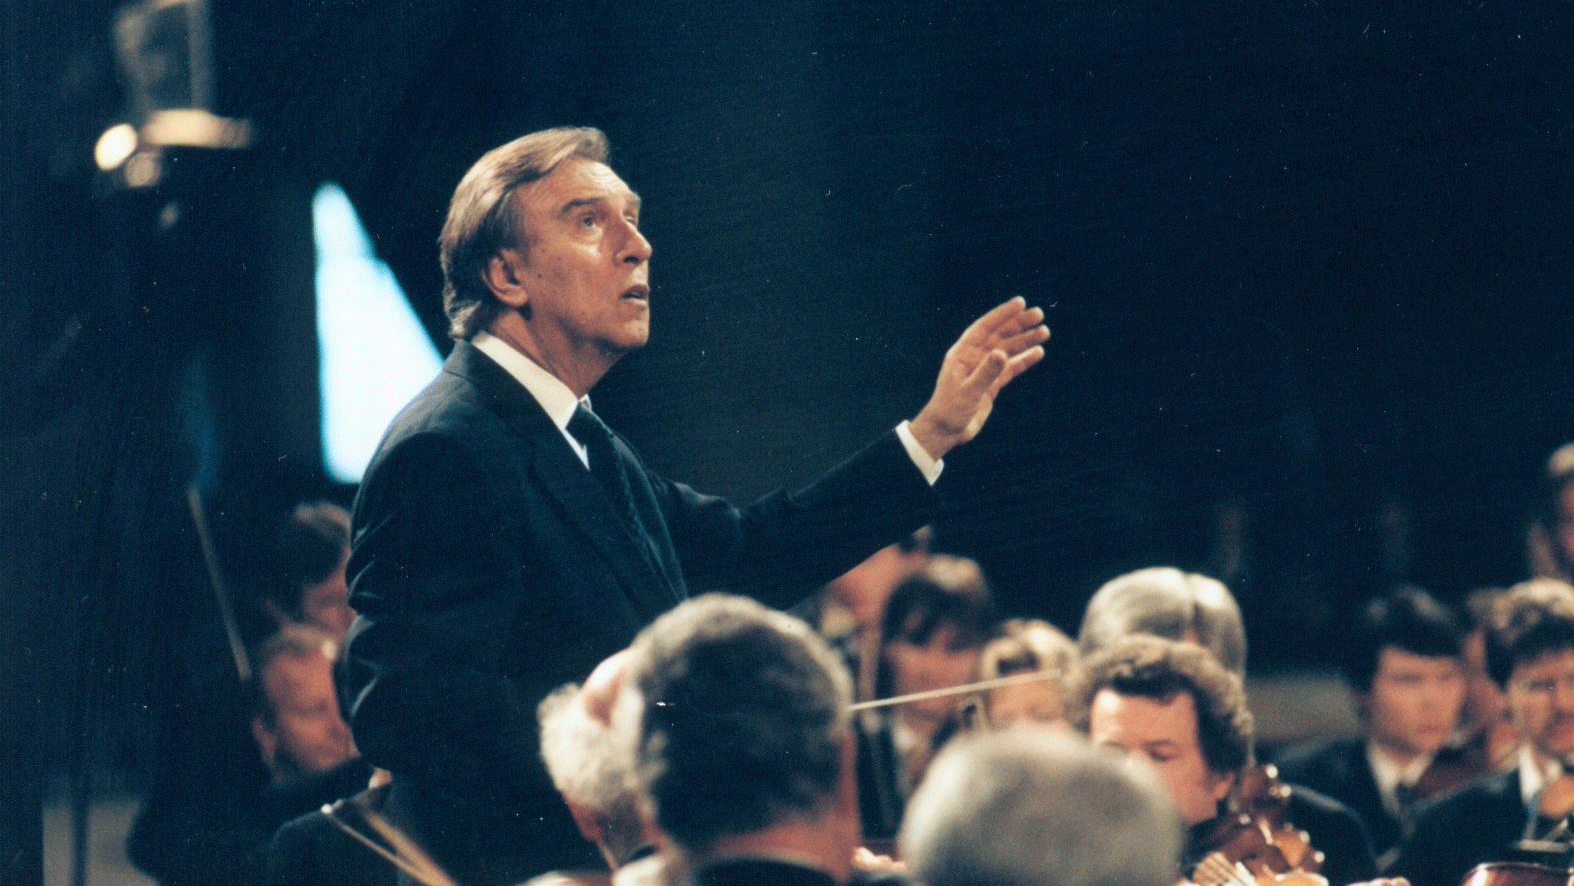 Claudio Abbado conducts Tchaikovsky and Verdi